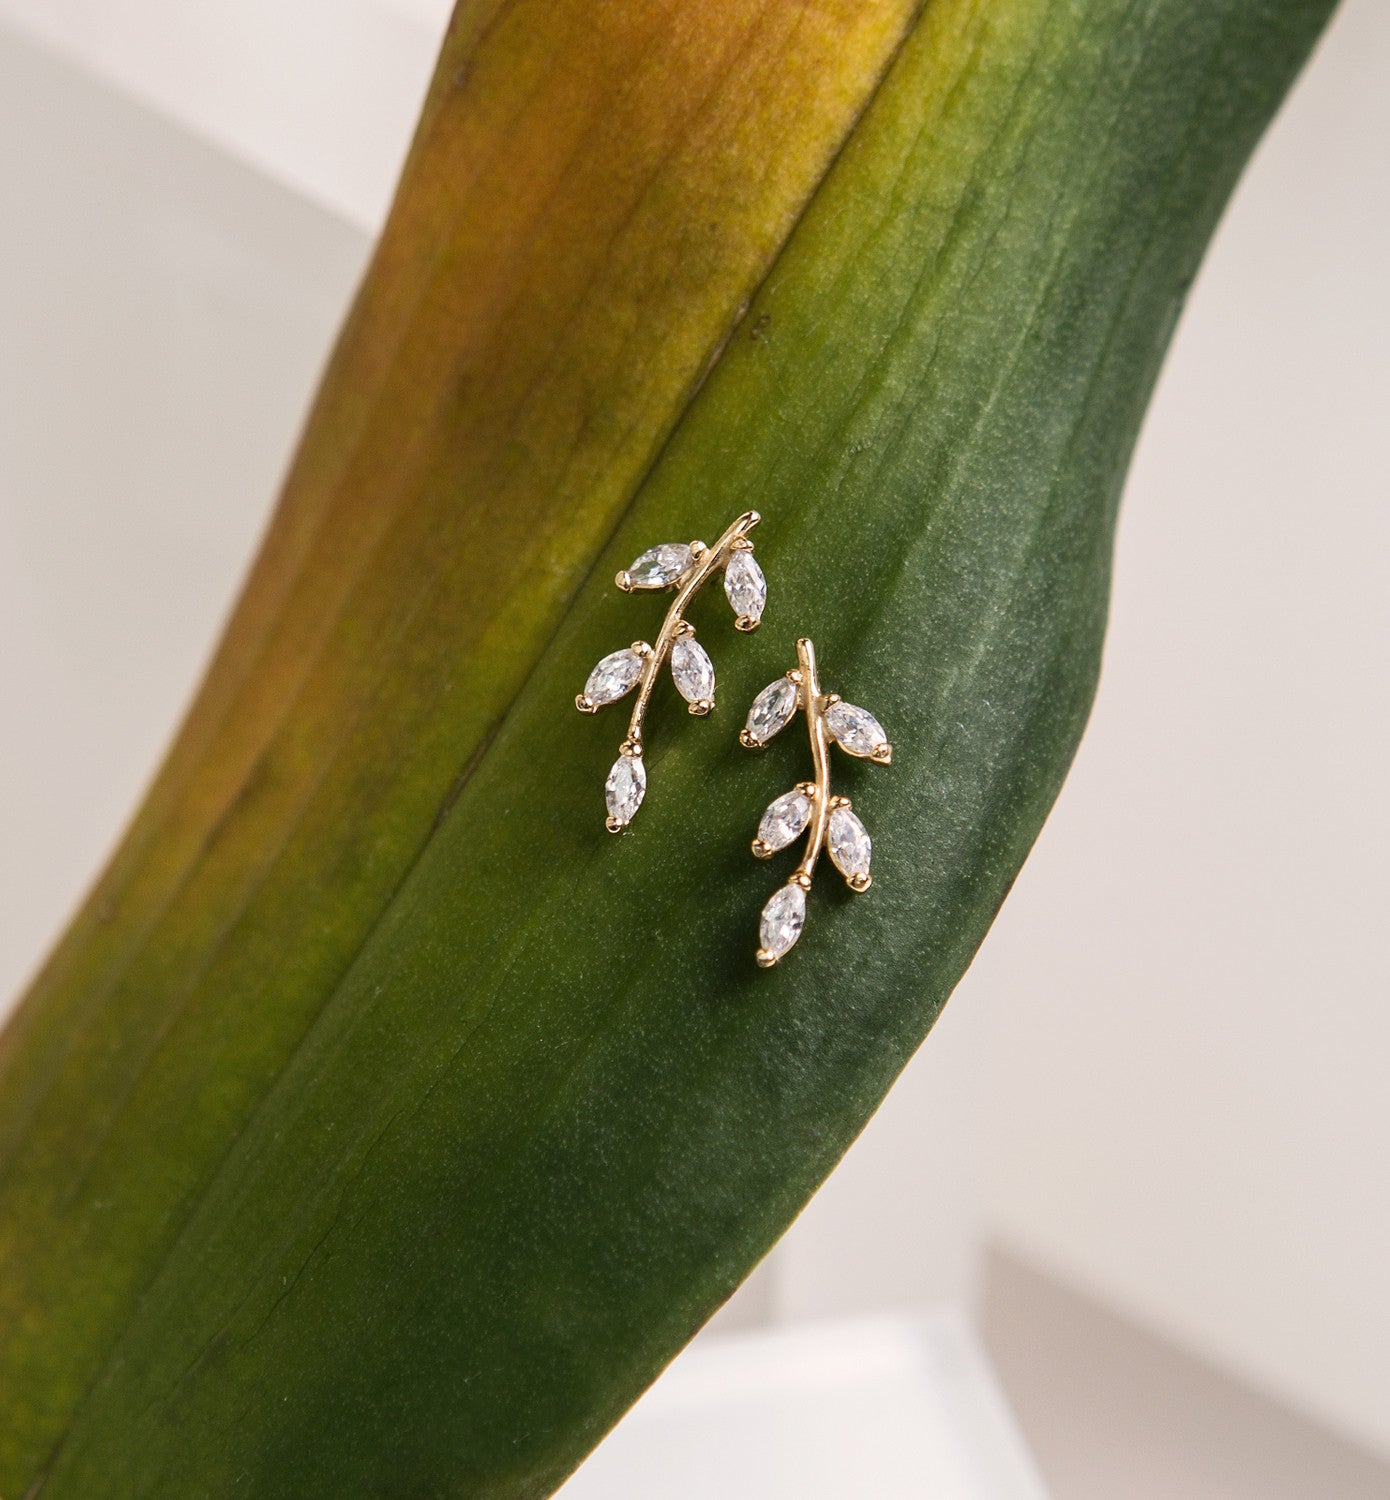 Crystal Leaf Ear Climbers, Earrings - AMY O. Jewelry